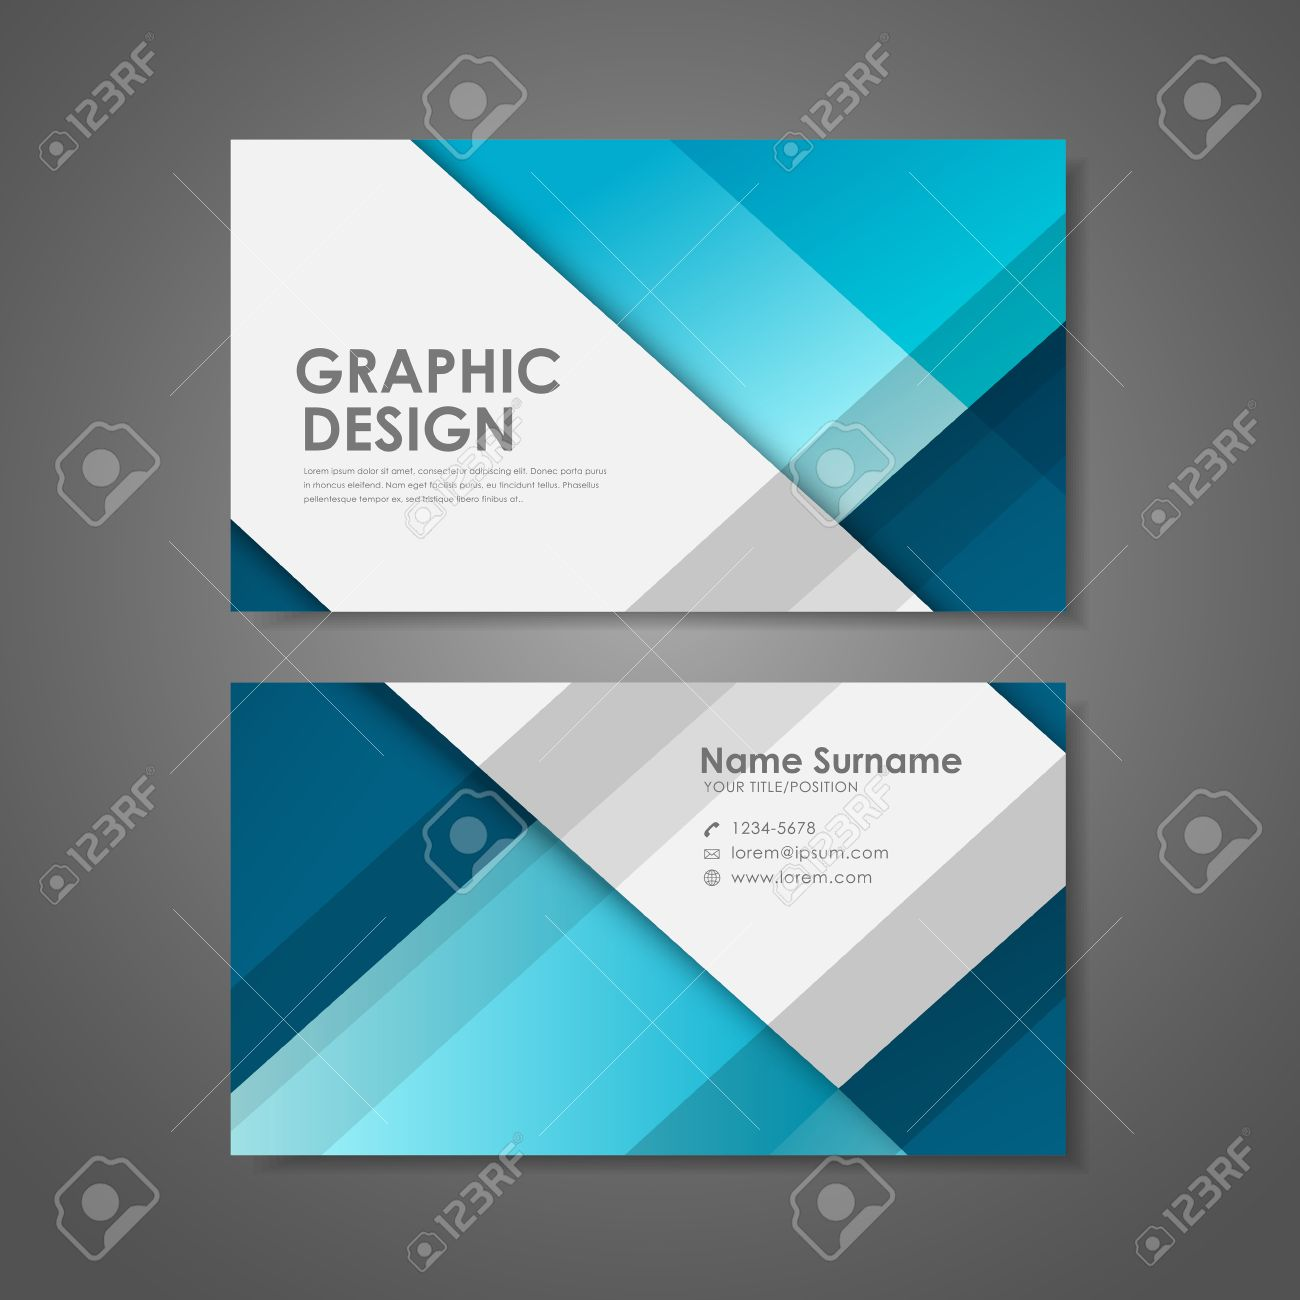 Abstract creative business card template in blue royalty free abstract creative business card template in blue banco de imagens 31845871 accmission Gallery